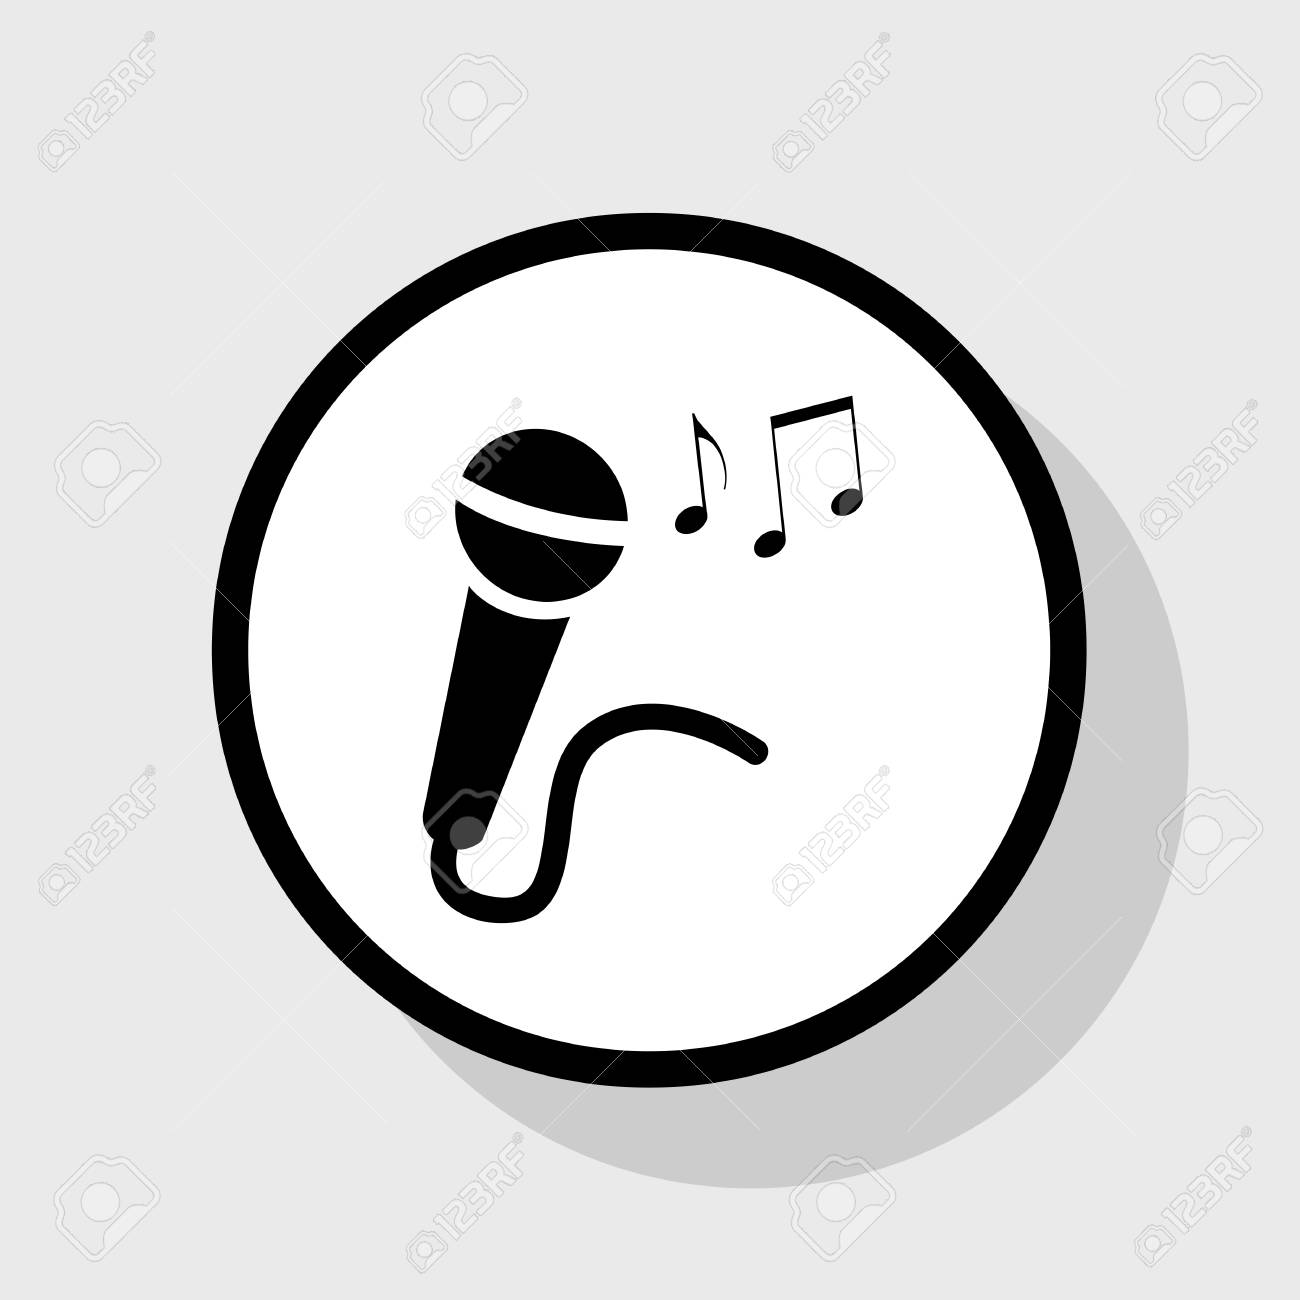 Microphone Sign With Music Notes Vector Flat Black Icon In